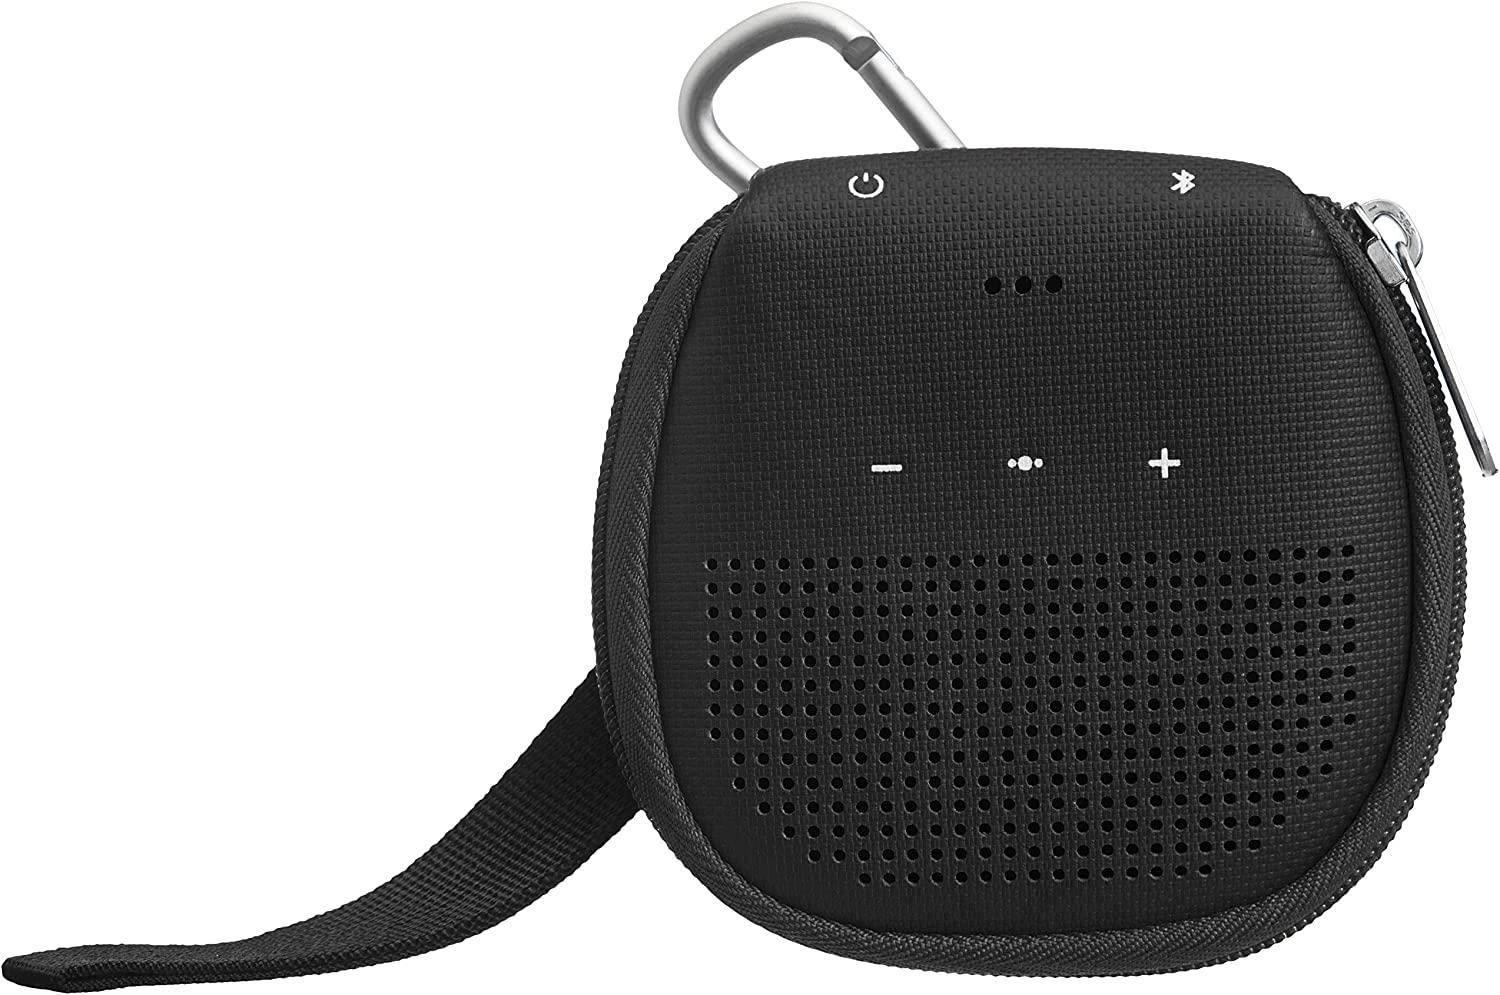 Amazon Basics Case with Kickstand Ranking TOP4 Micro safety for SoundLink Bose Bluet